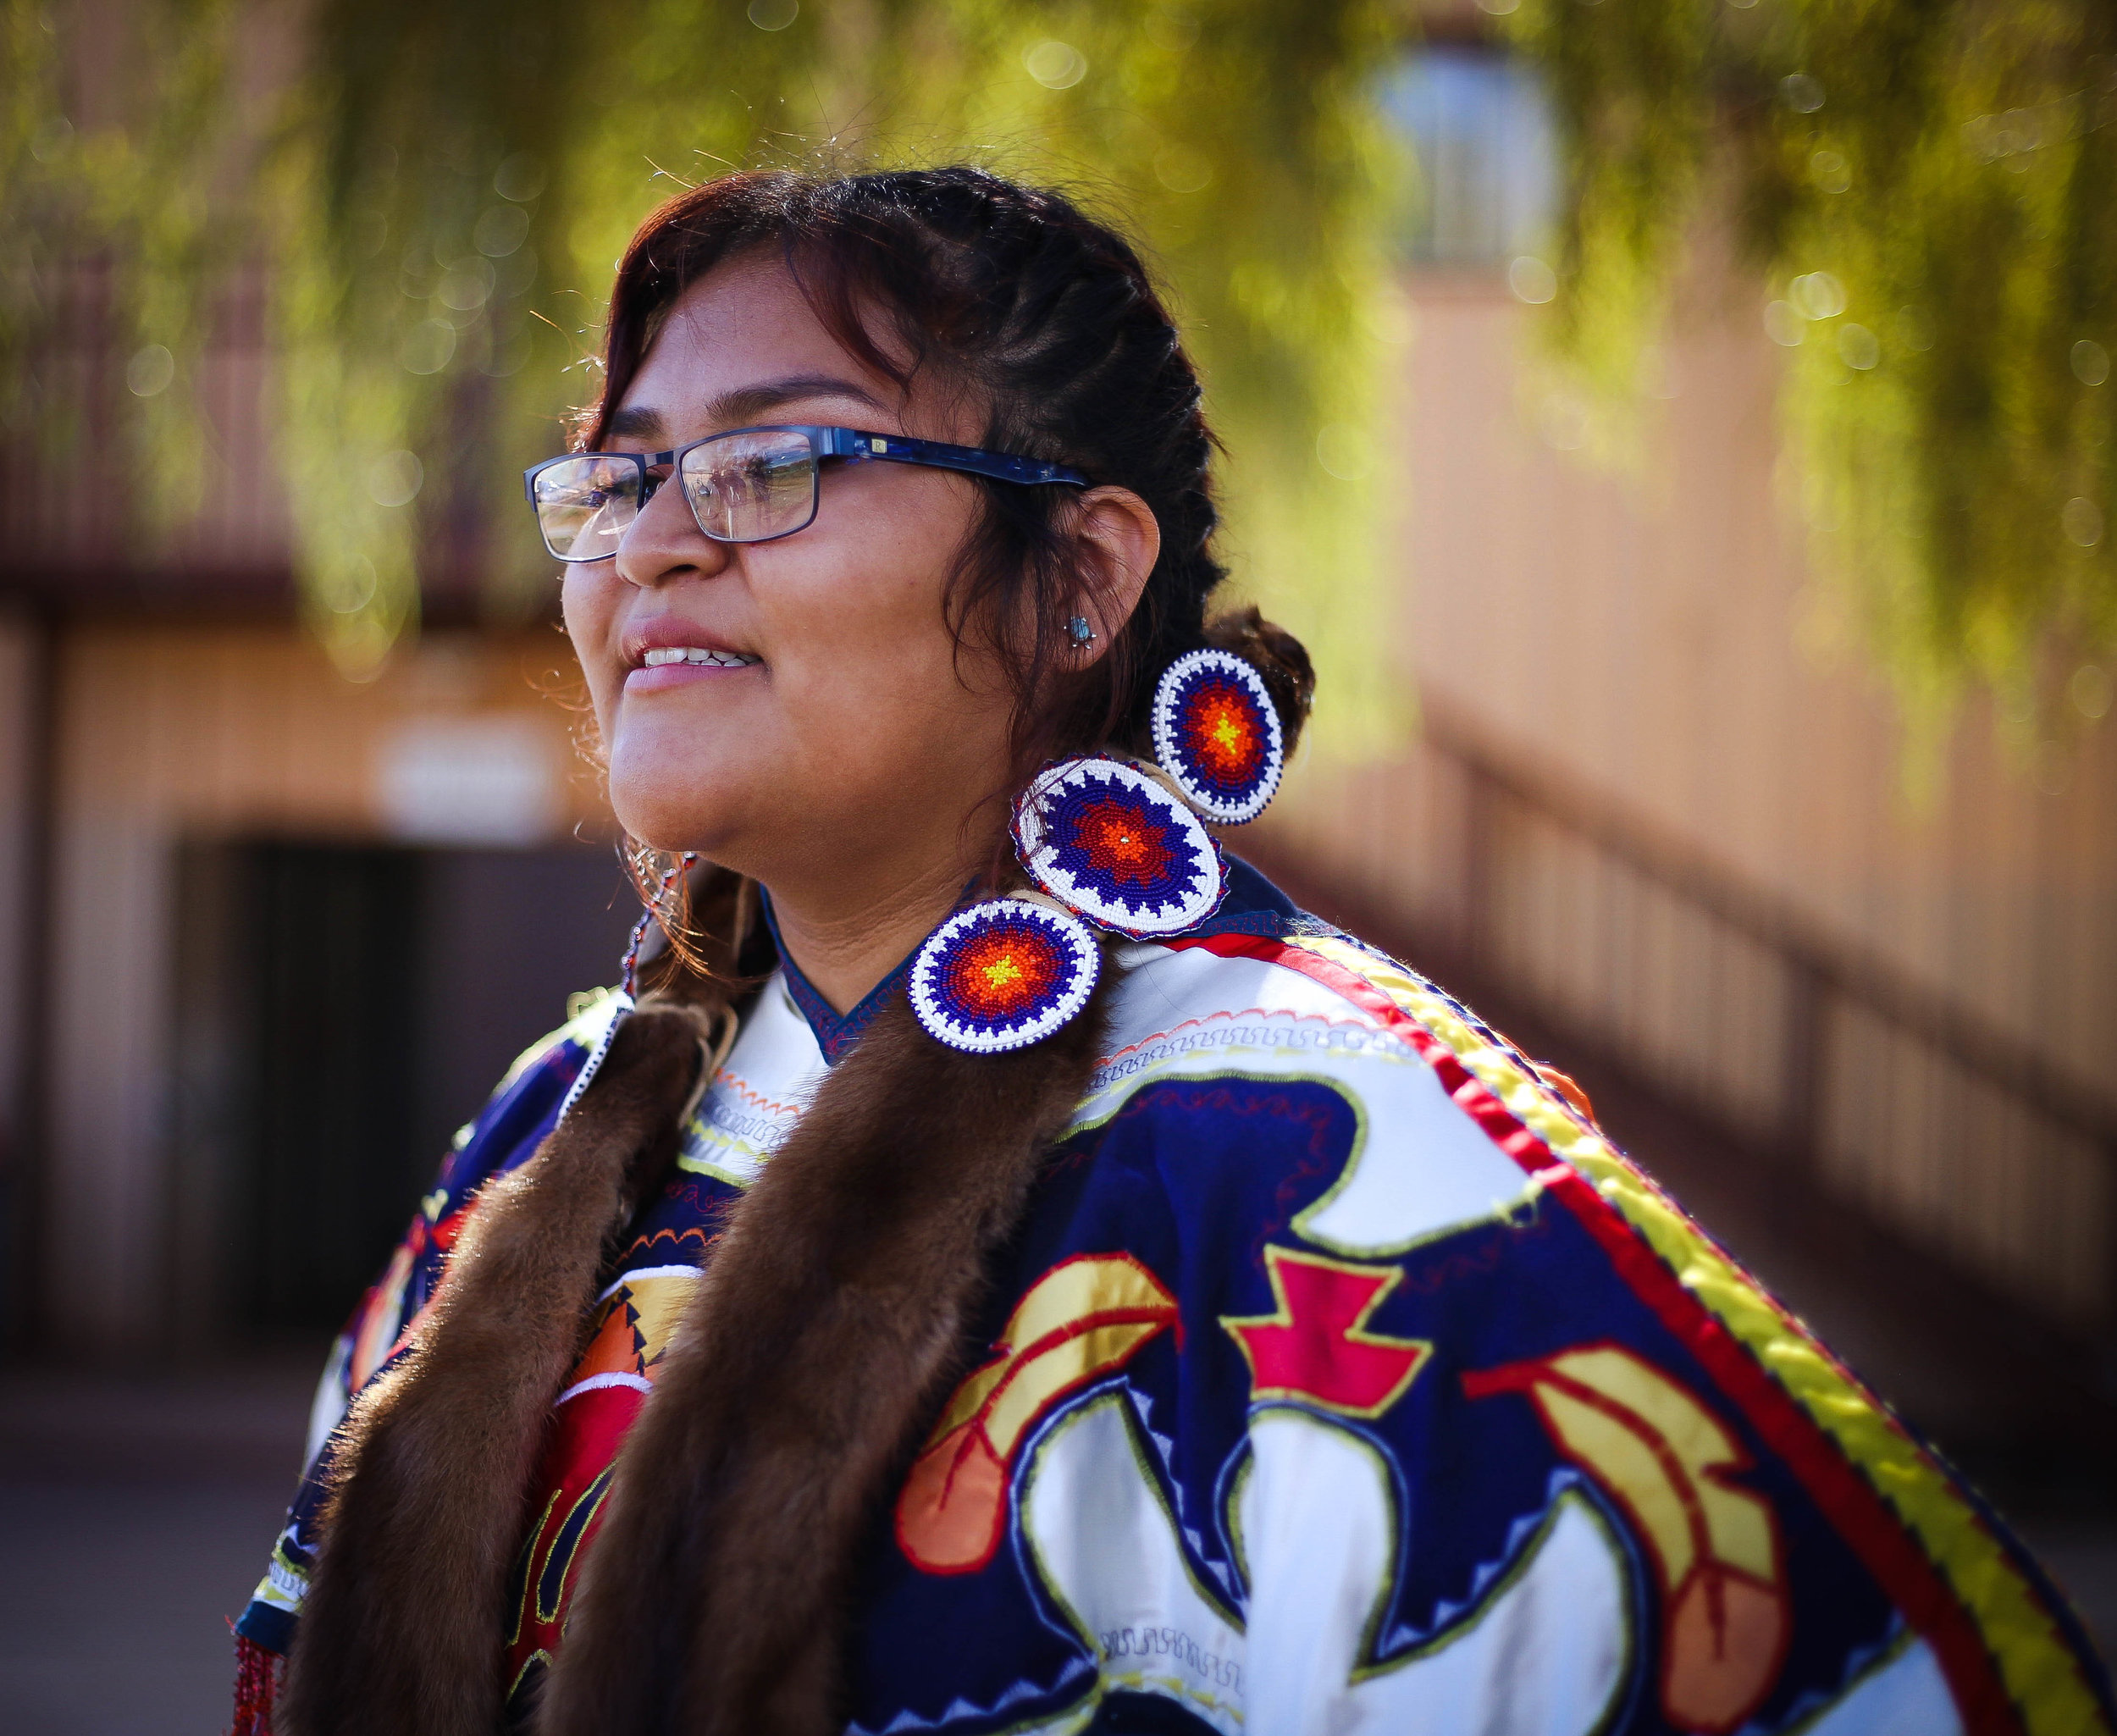 Laqueta, 10th grade, is in her Native regalia performing at our Native Heritage Festival this year.